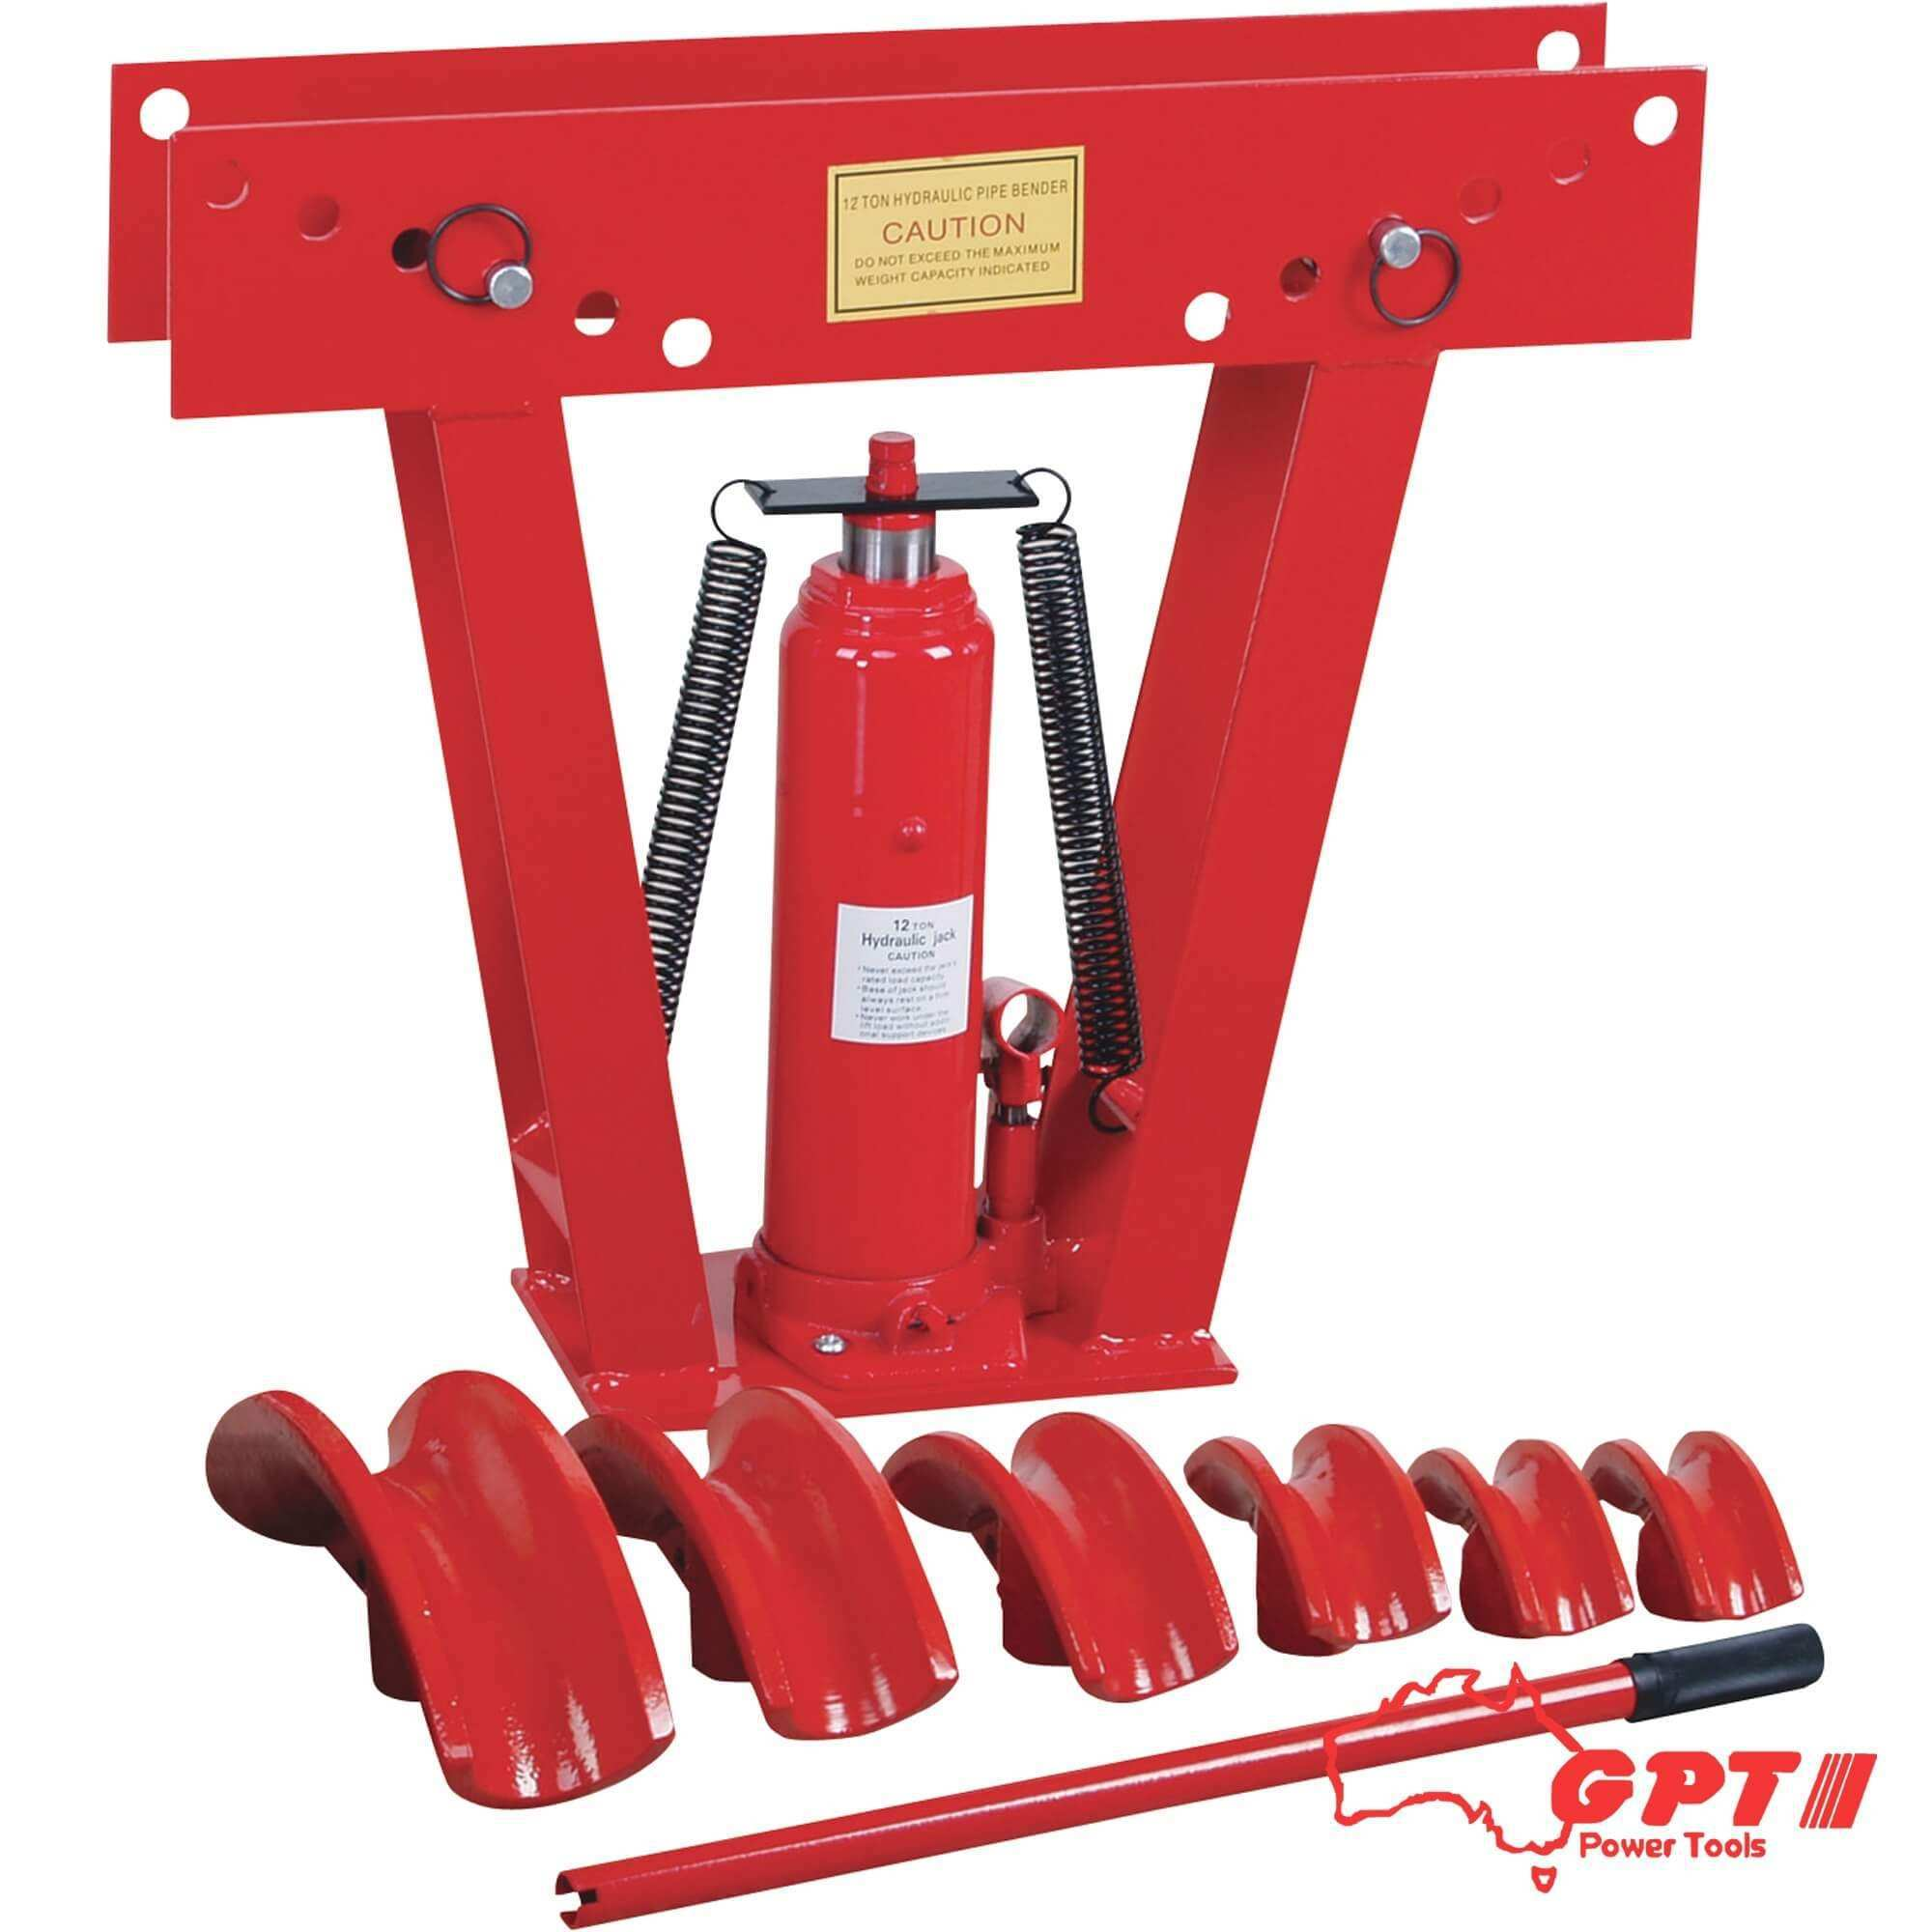 12 TON GPT HYDRAULIC PIPE BENDER W/ 5 PIPE ATTACHMENT | 90⁰ BEND 50MM MAX BEND